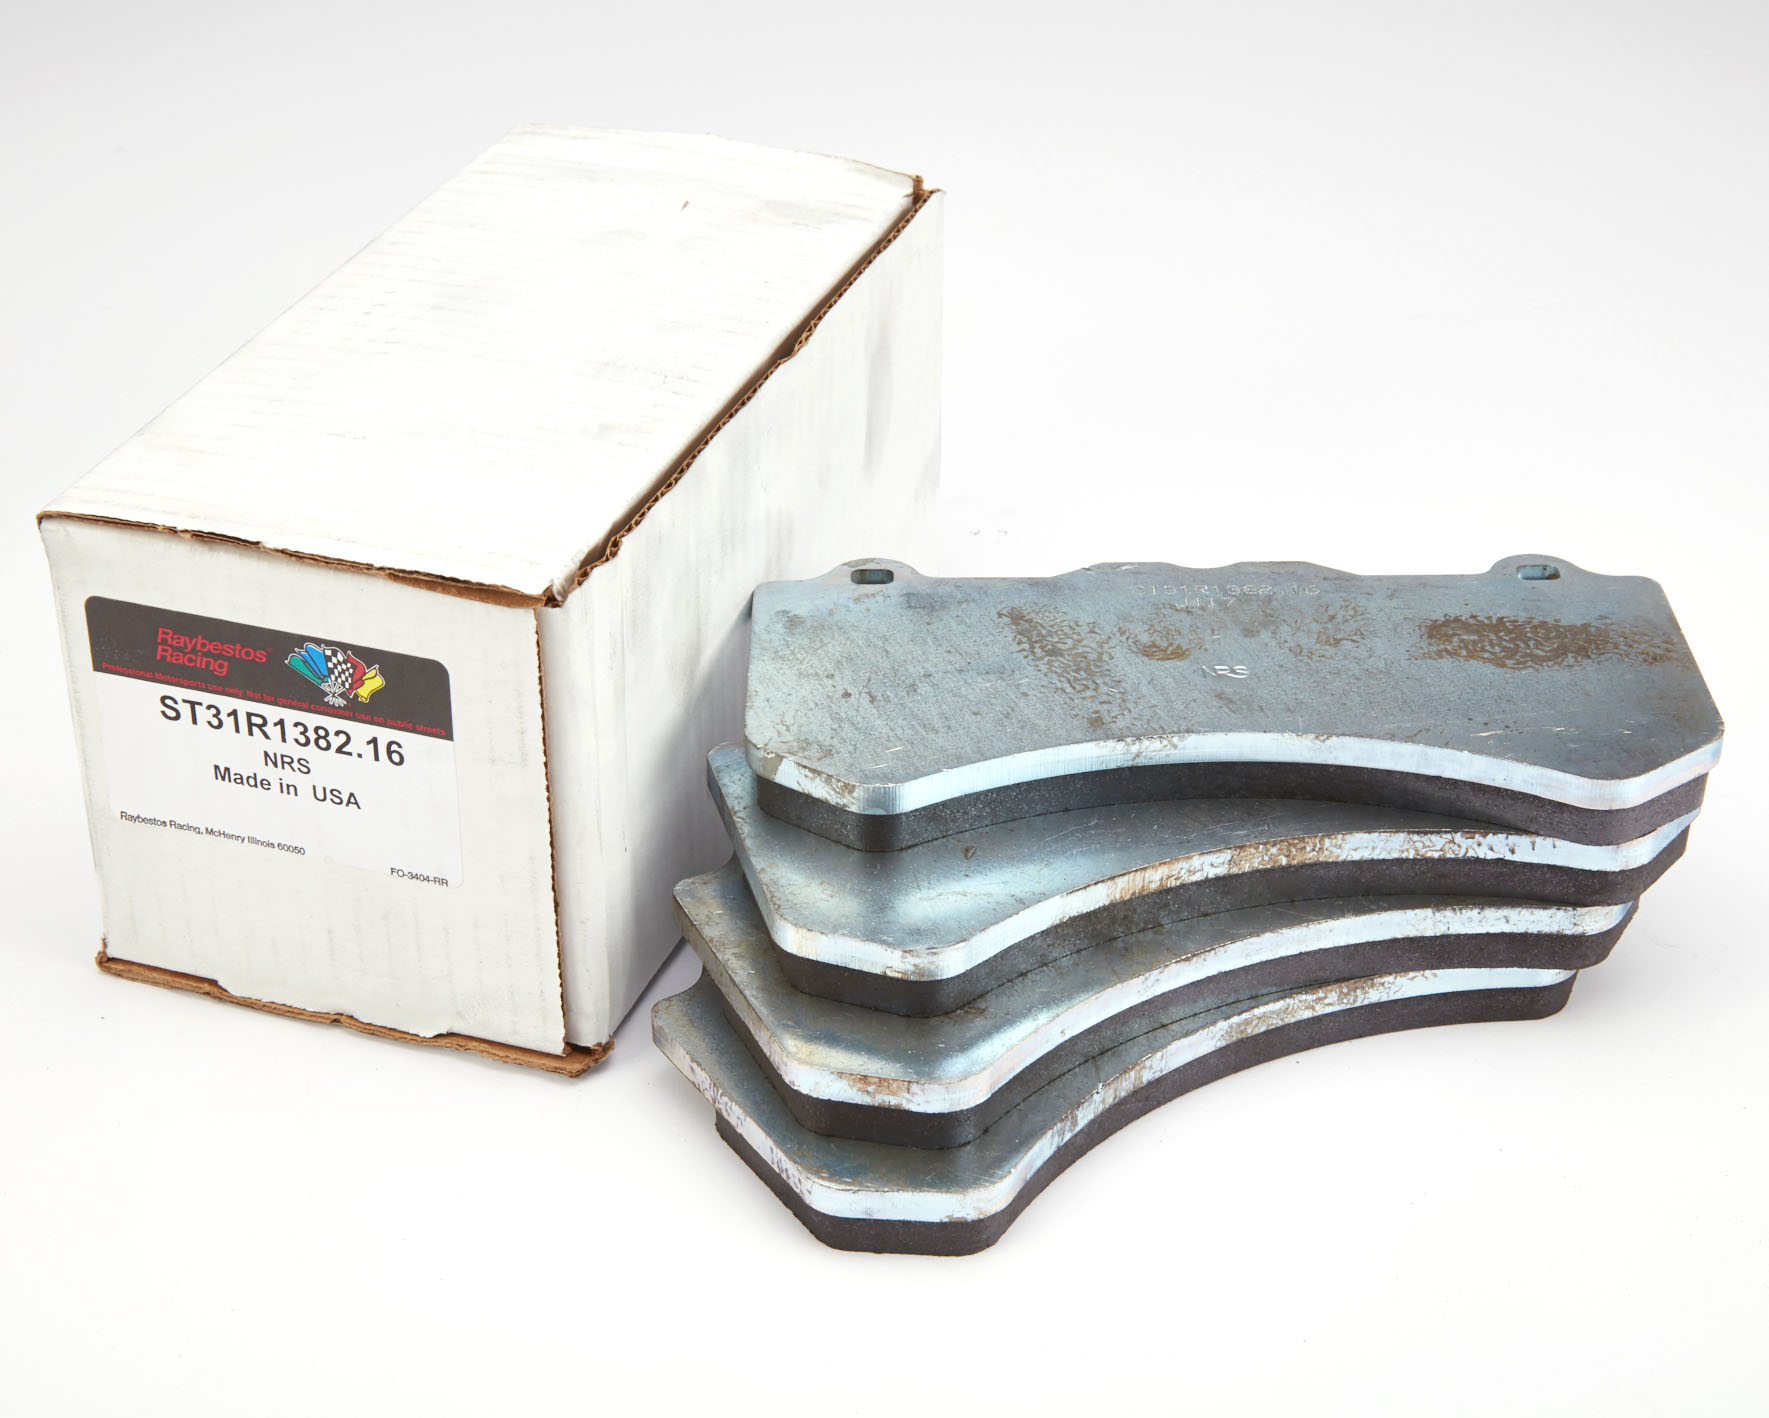 ST43R1382.16 RAYBESTOS front pads